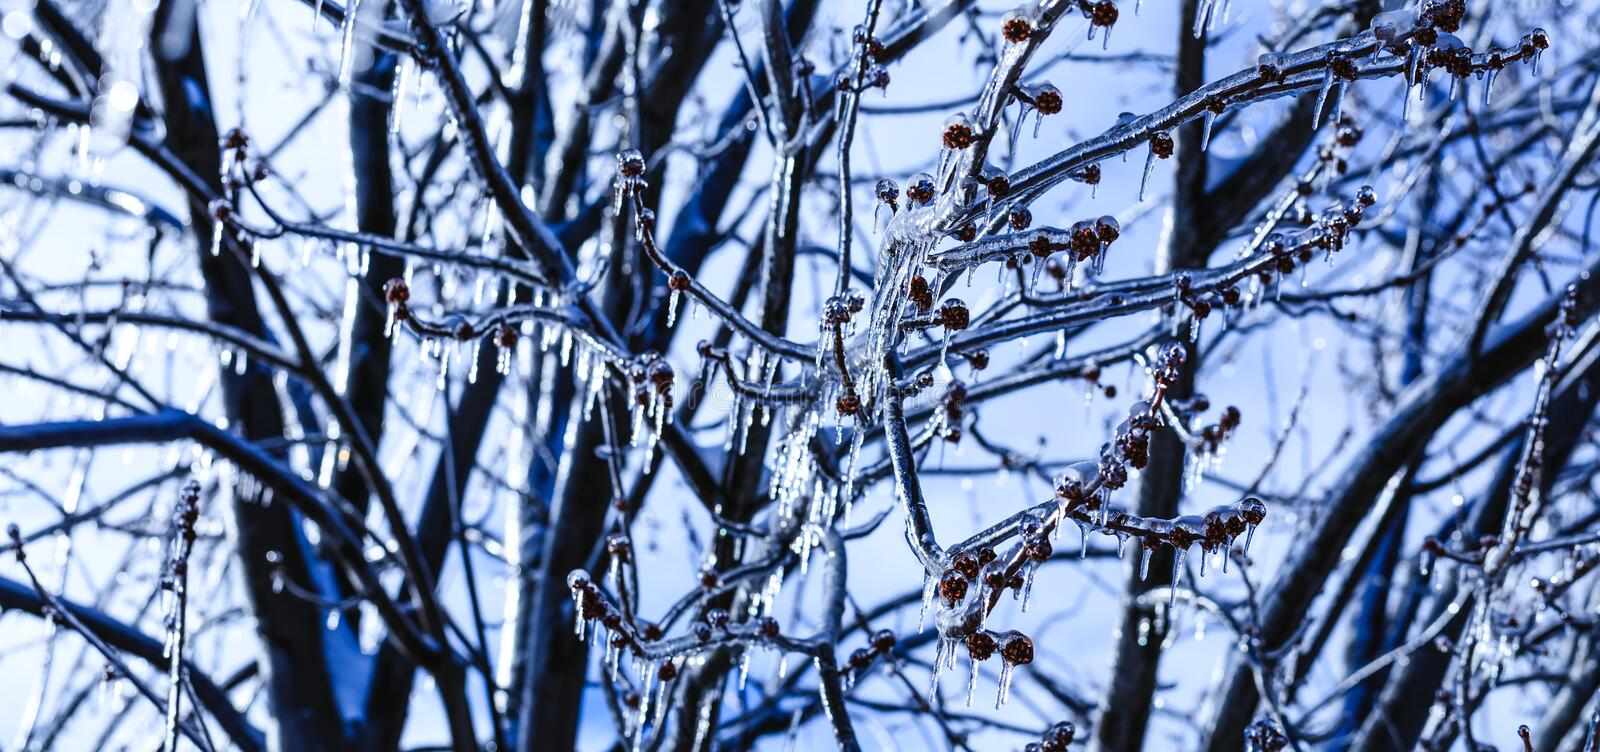 Spring buds with crystal icicles hanging from tree branches. Melting icicle and falling shiny drops over a bright frozen landscape royalty free stock images